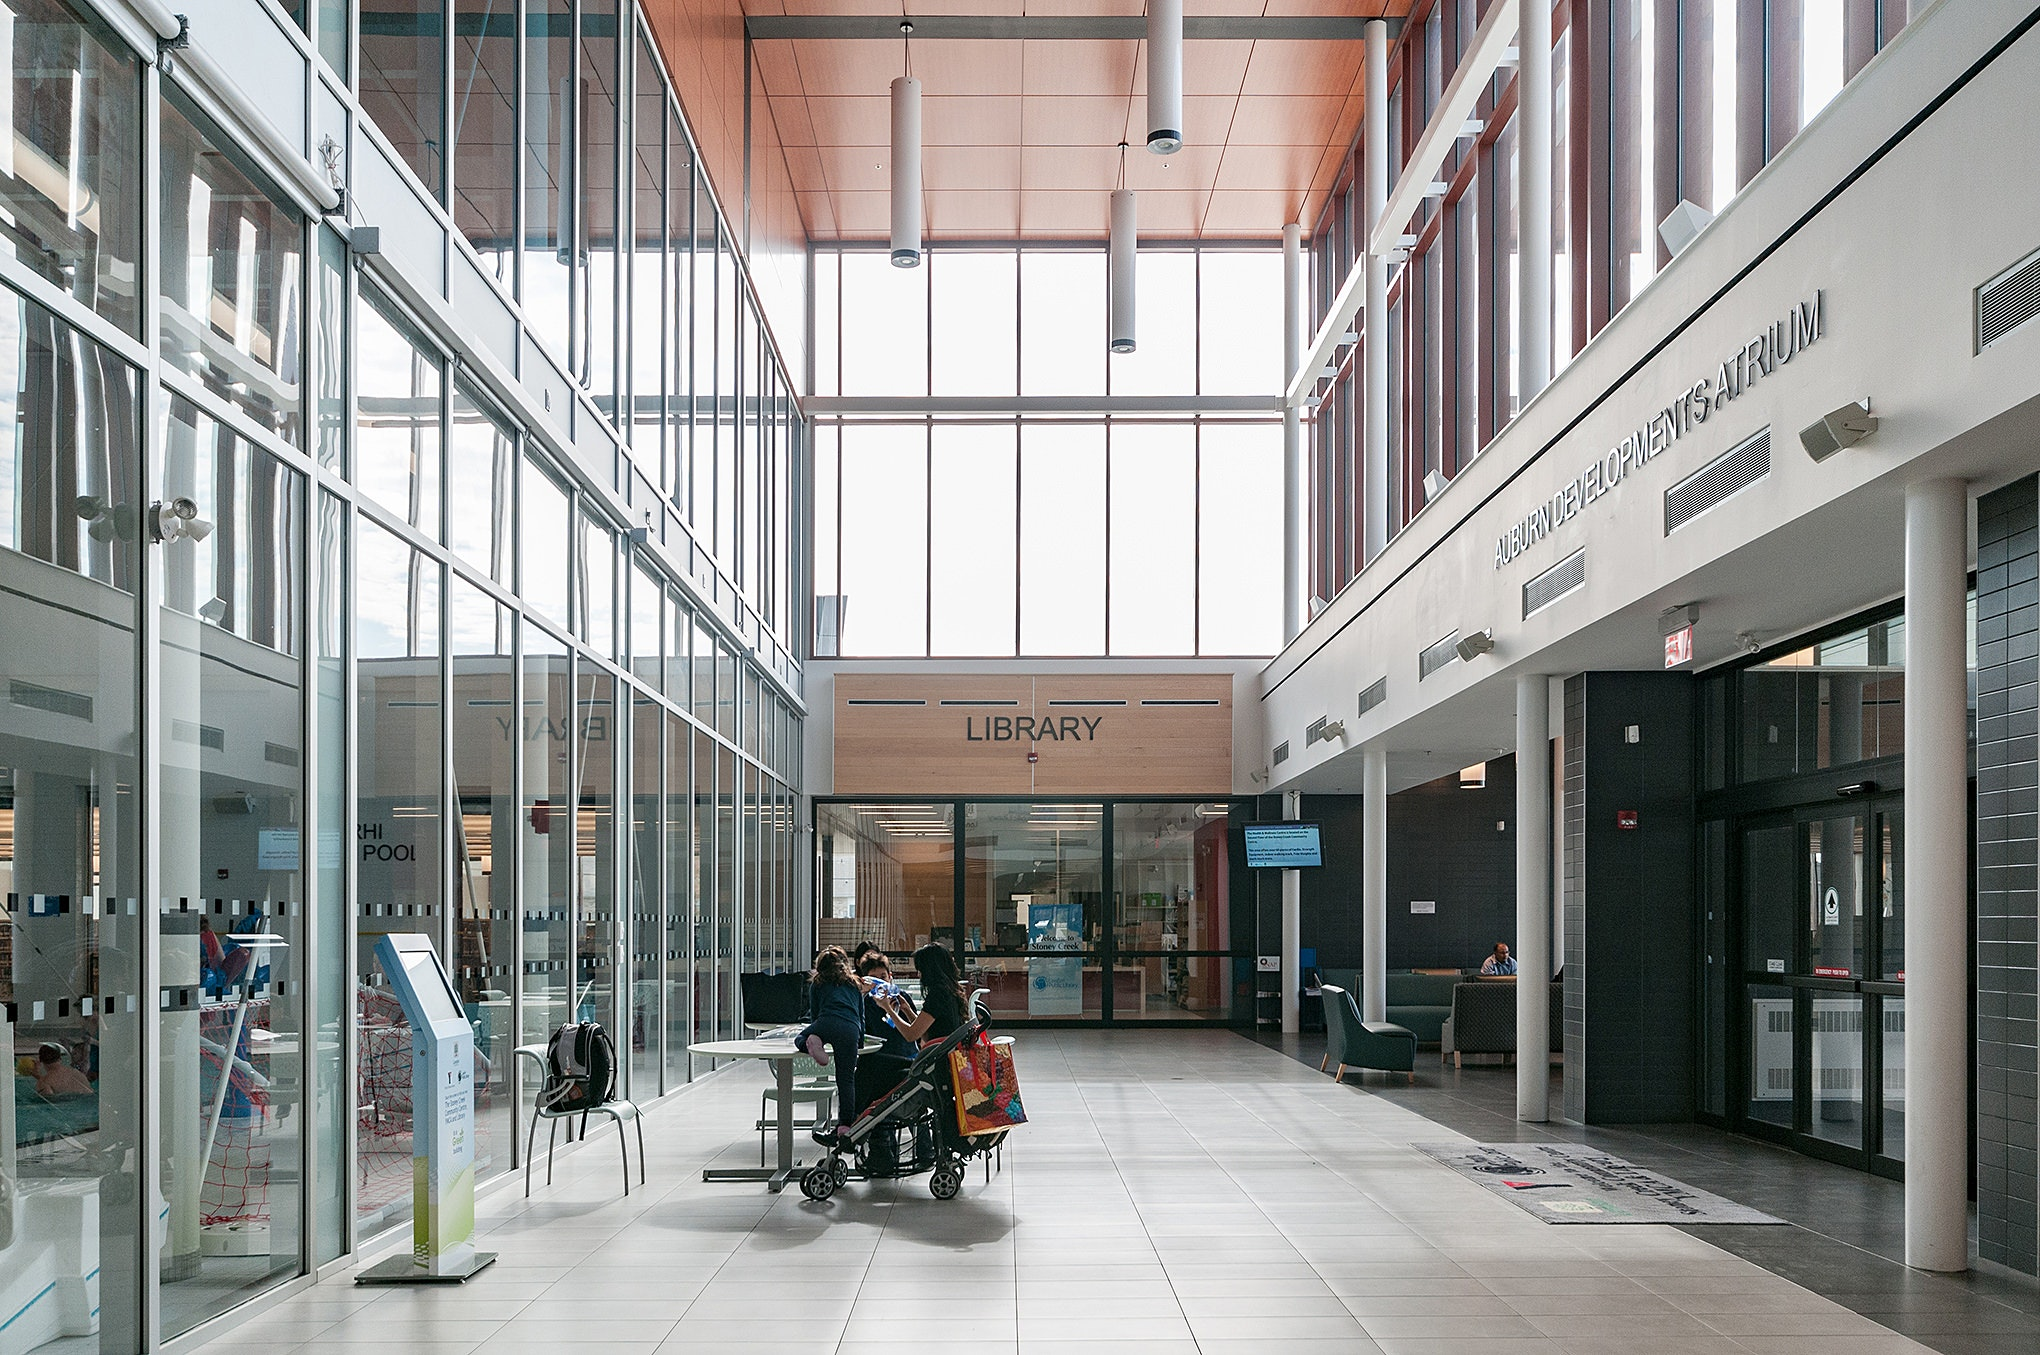 Architectural interior Photo of Stoney Creek YMCA in London Ontario by photographer, Scott Webb